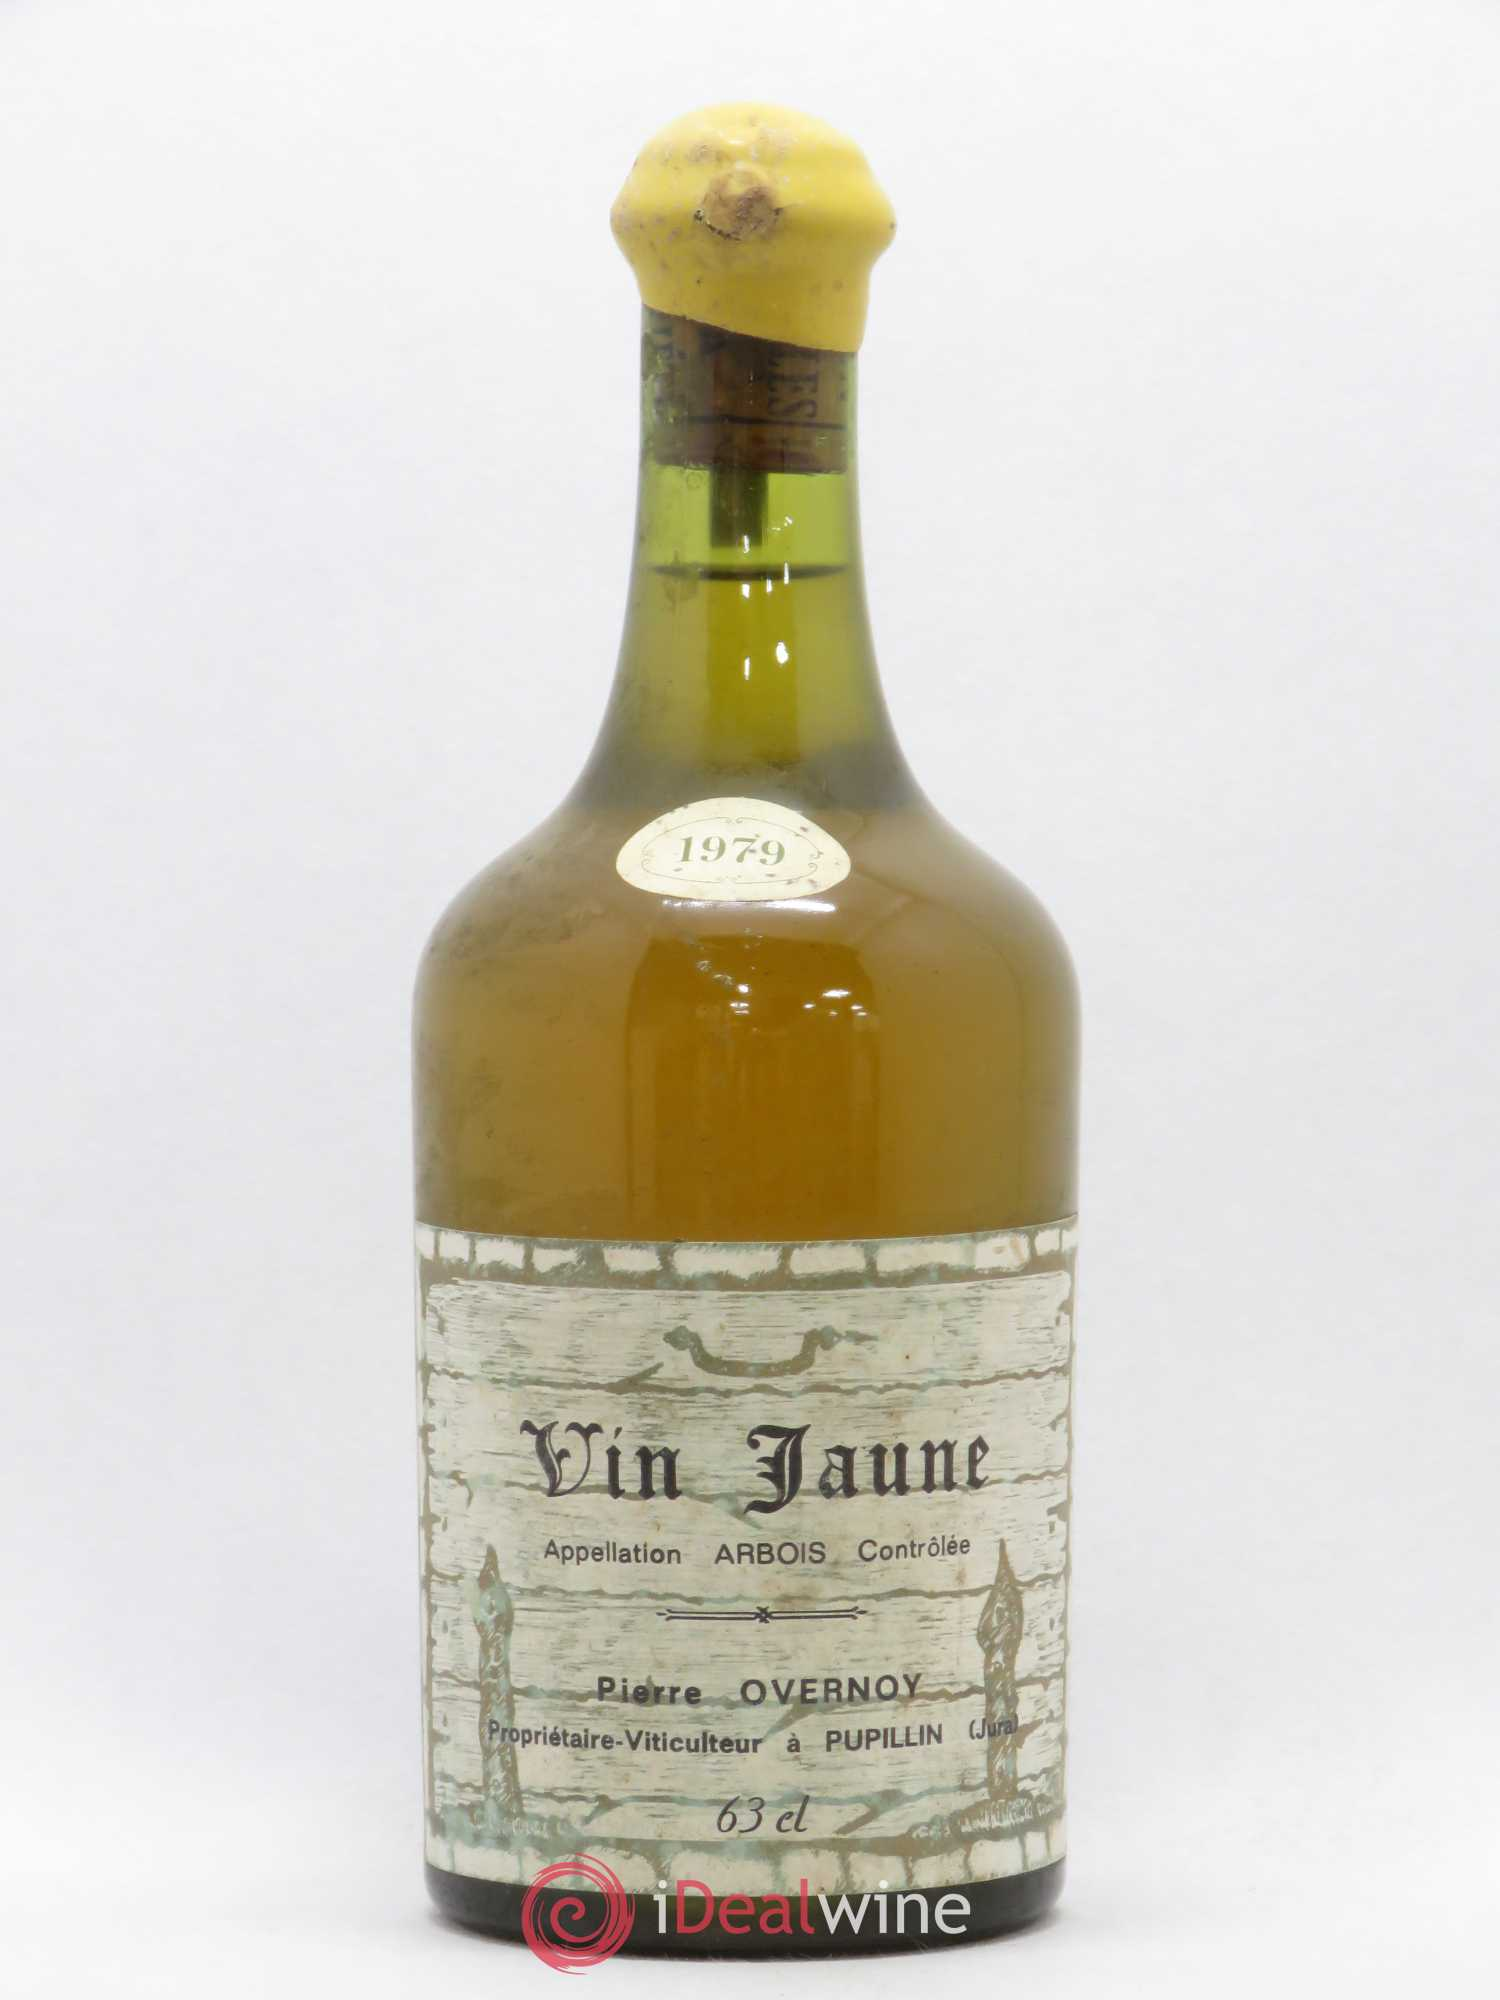 Arbois Pupillin Vin jaune Pierre Overnoy (Domaine)  1979 - Lot of 1 Bottle